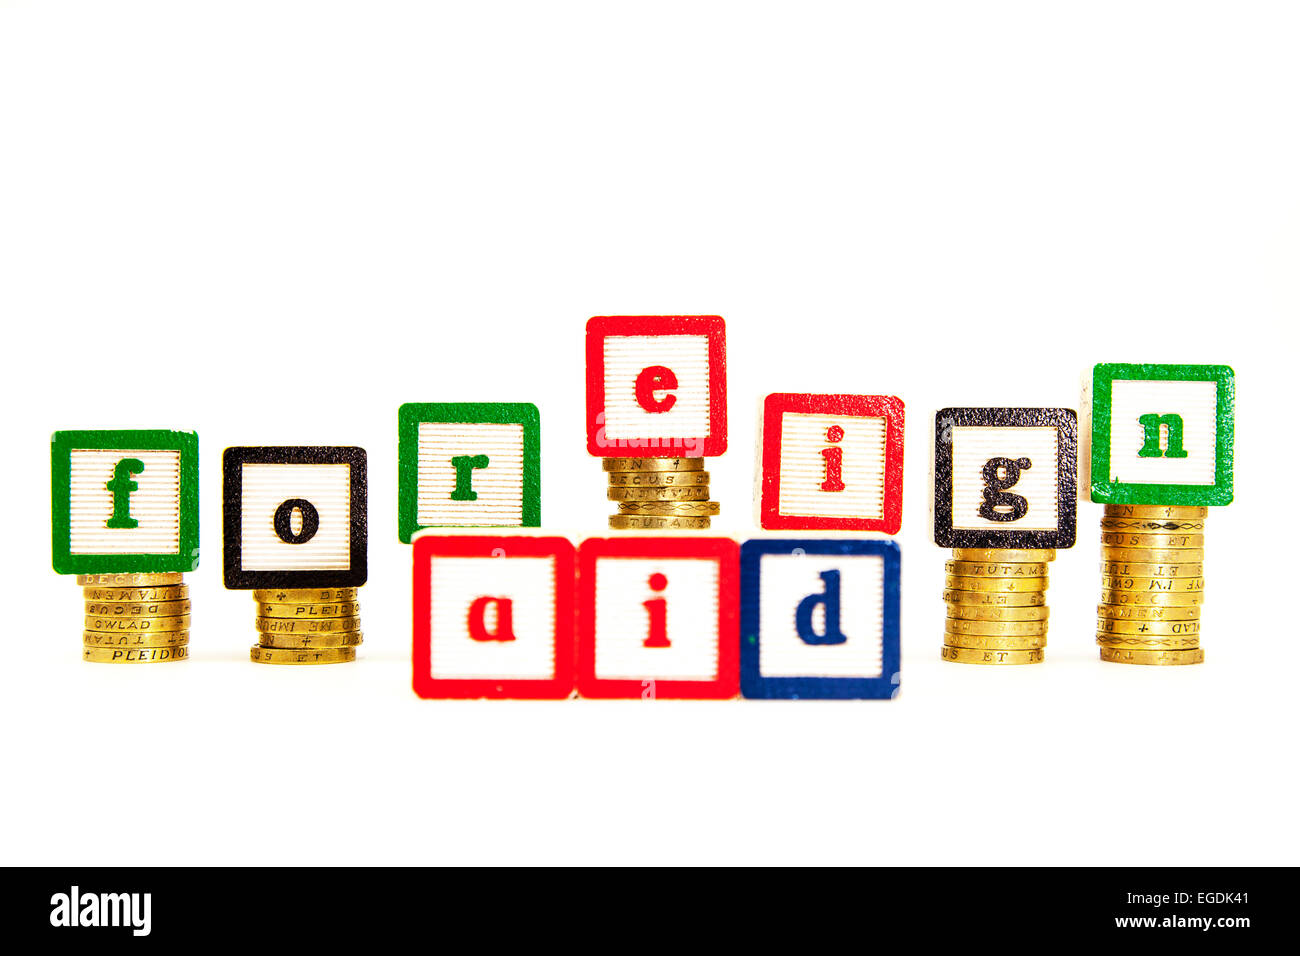 Foreign aid cost price money expence expense help cutout cut out white background copy space - Stock Image